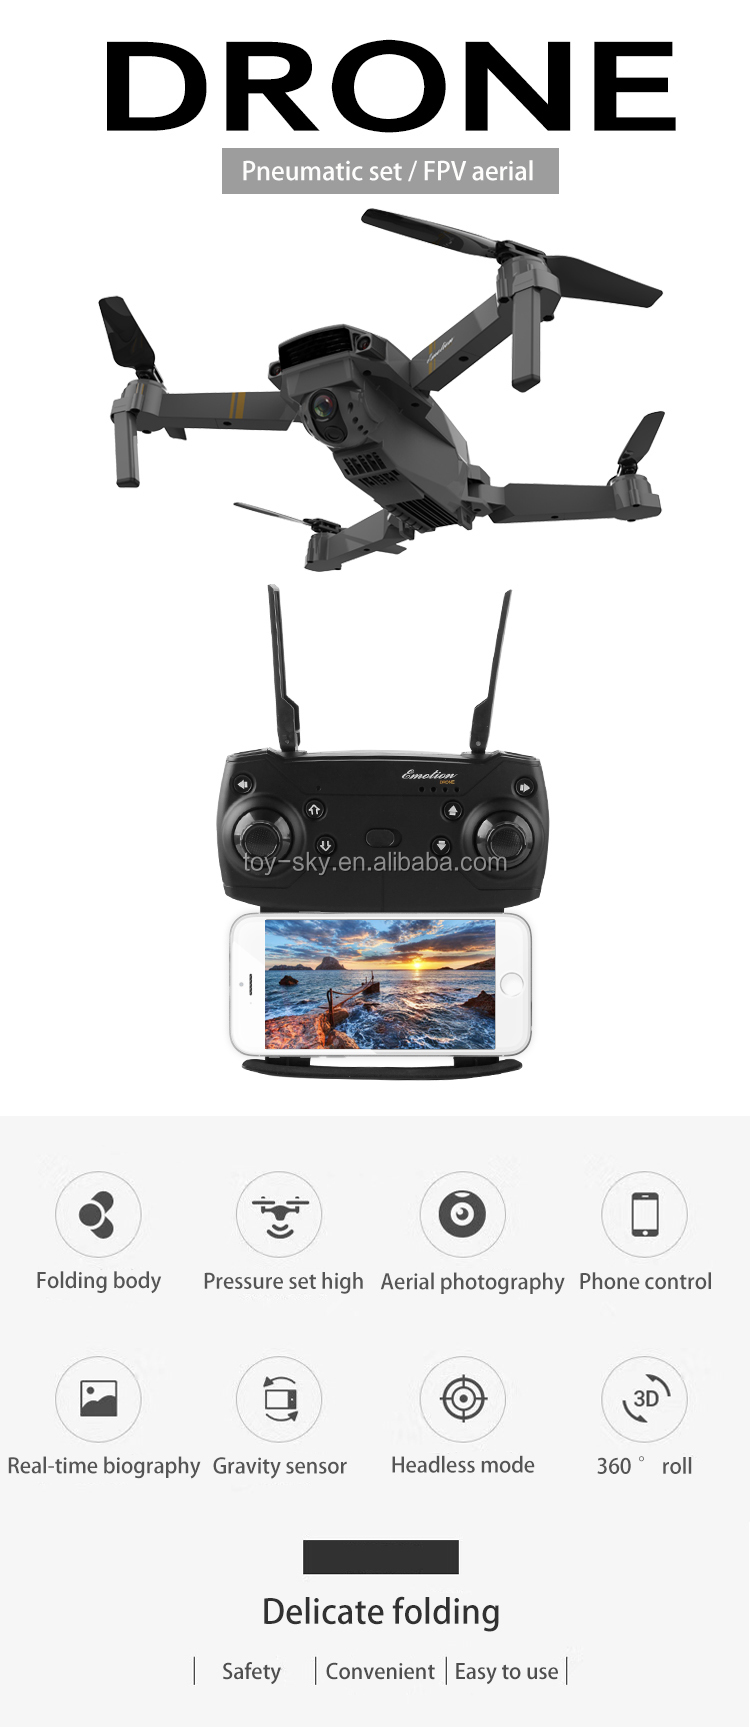 In stock original S168 2.4G Folding Selfie Fpv Drone Quadcopter Camera Wifi Wide angle 720P HD With Altitude Hold Mode JY019 E58